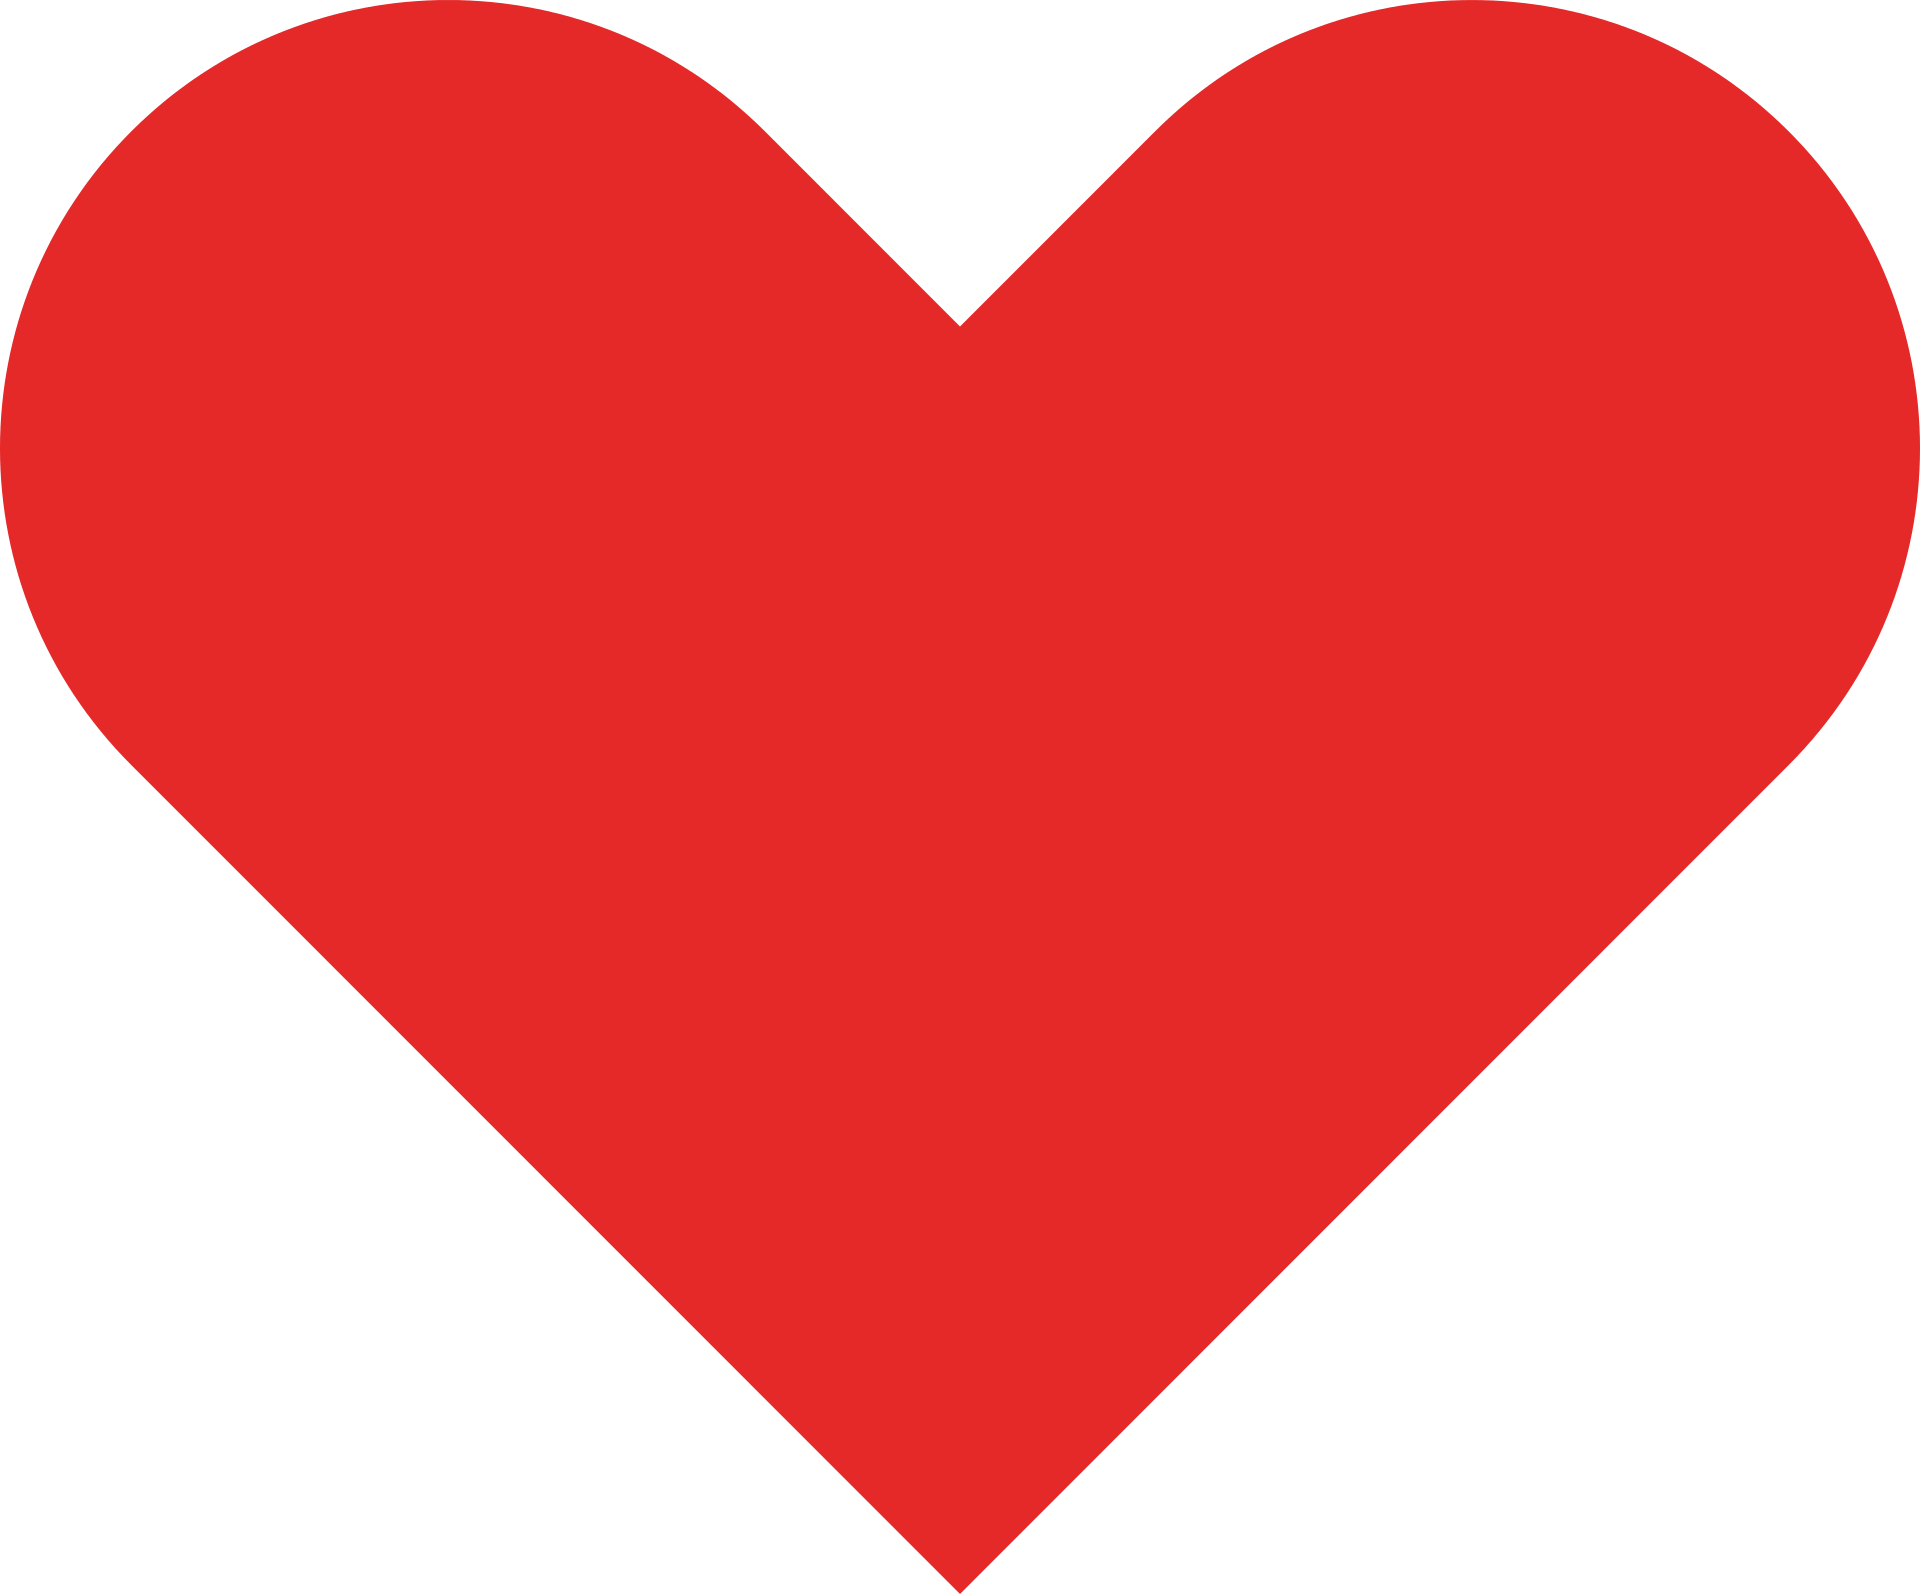 Love heart png. File symbolic wikimedia commons